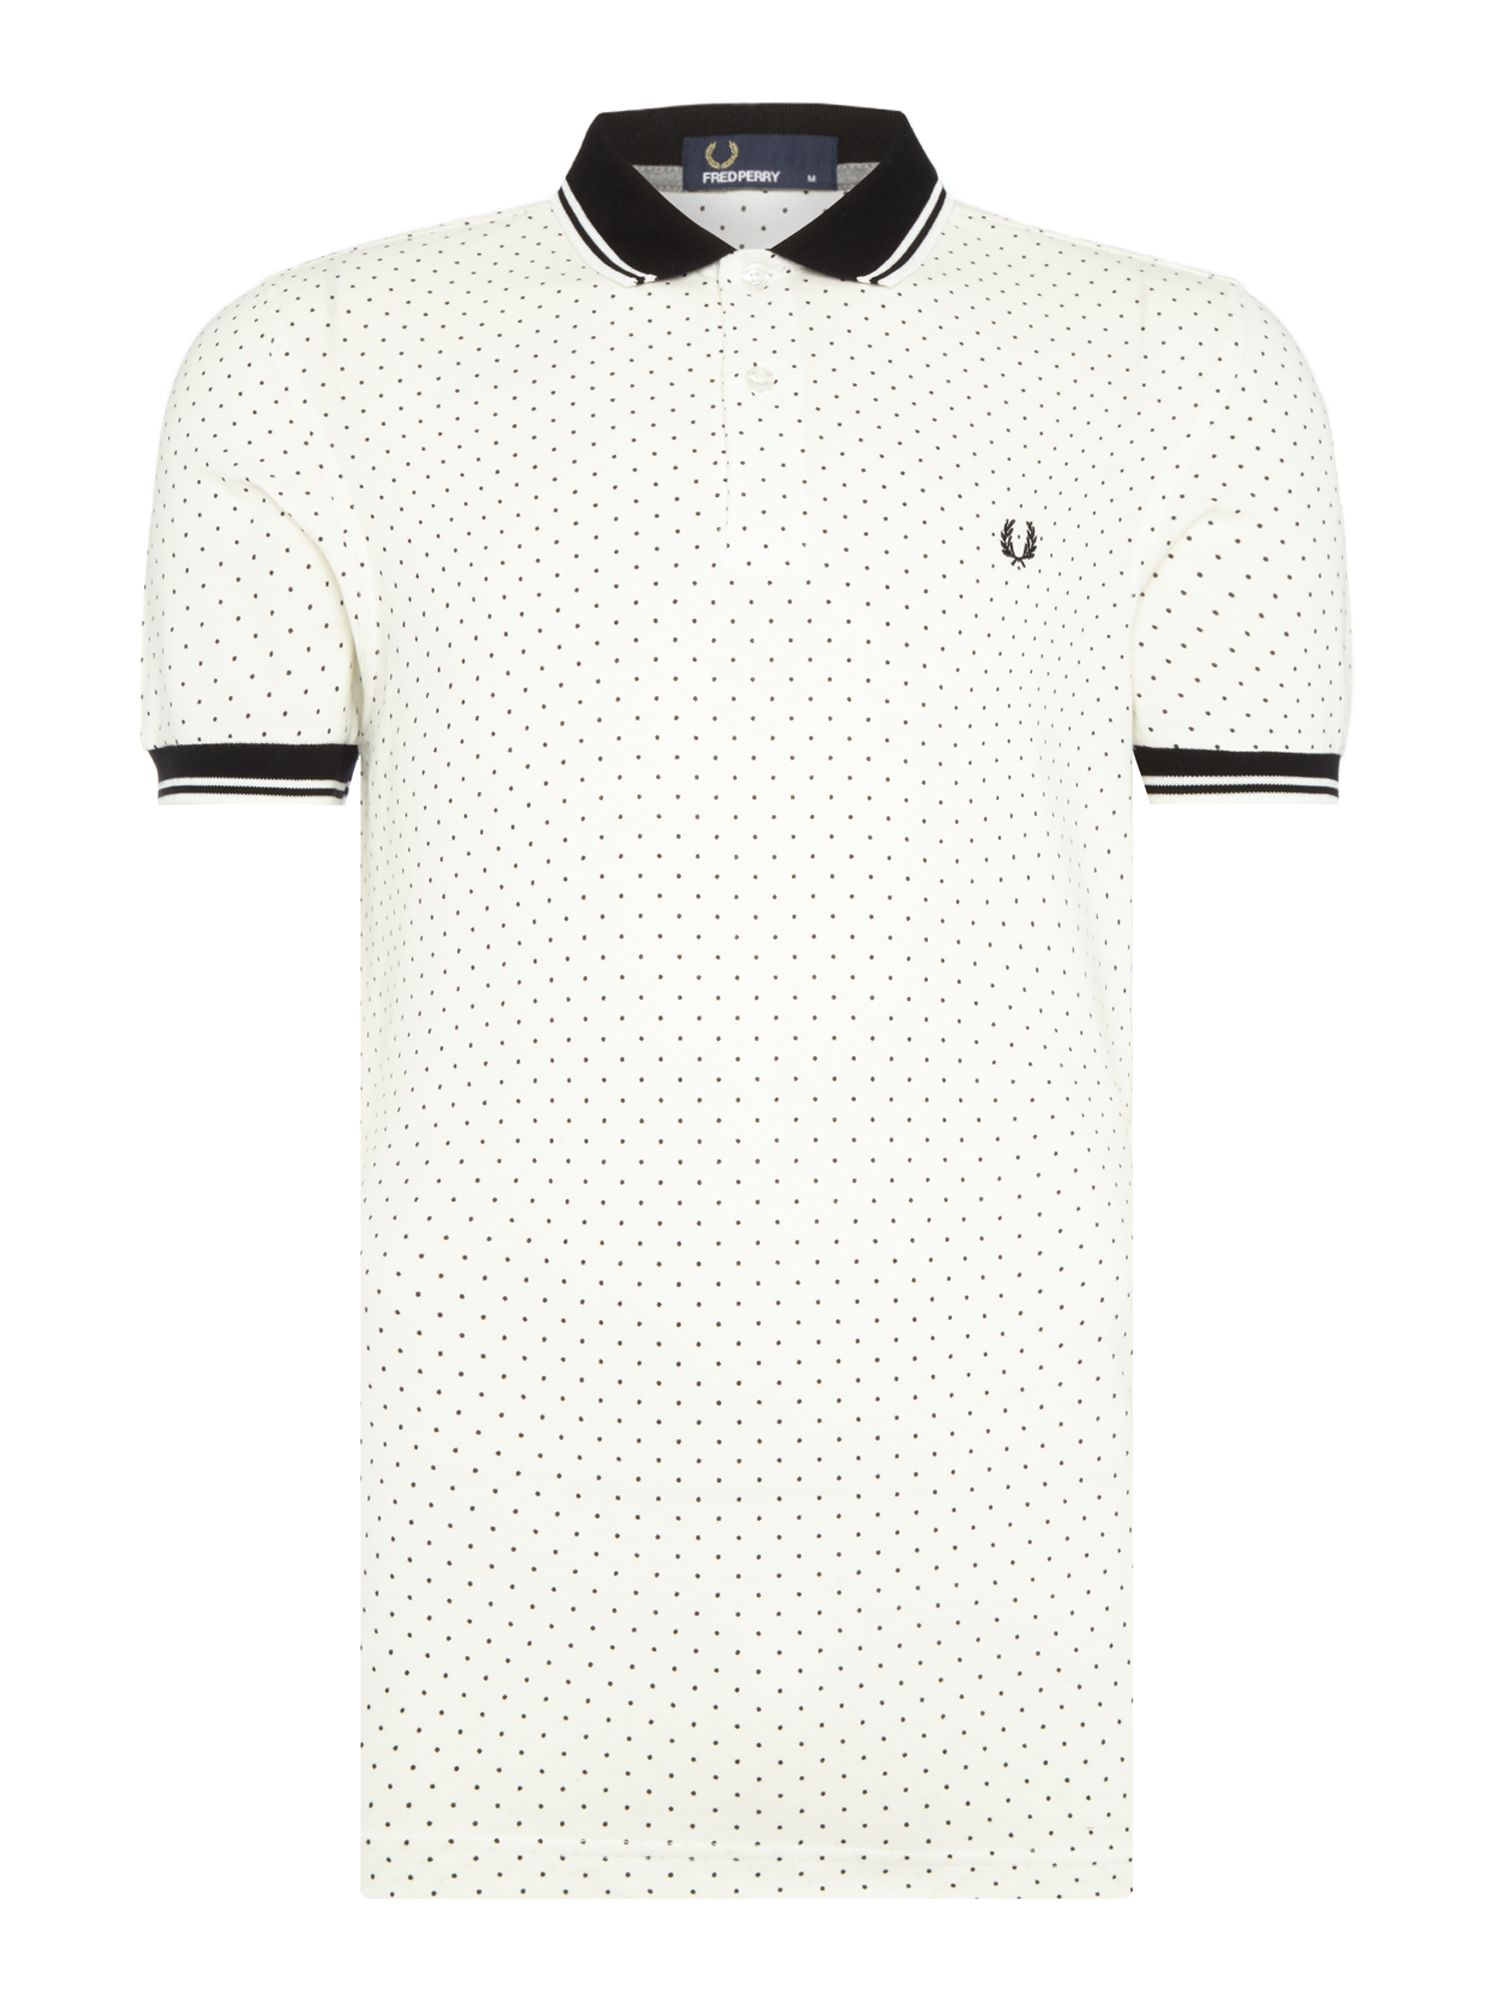 Mens Fred Perry Polka dot short sleeve pique polo shirt White